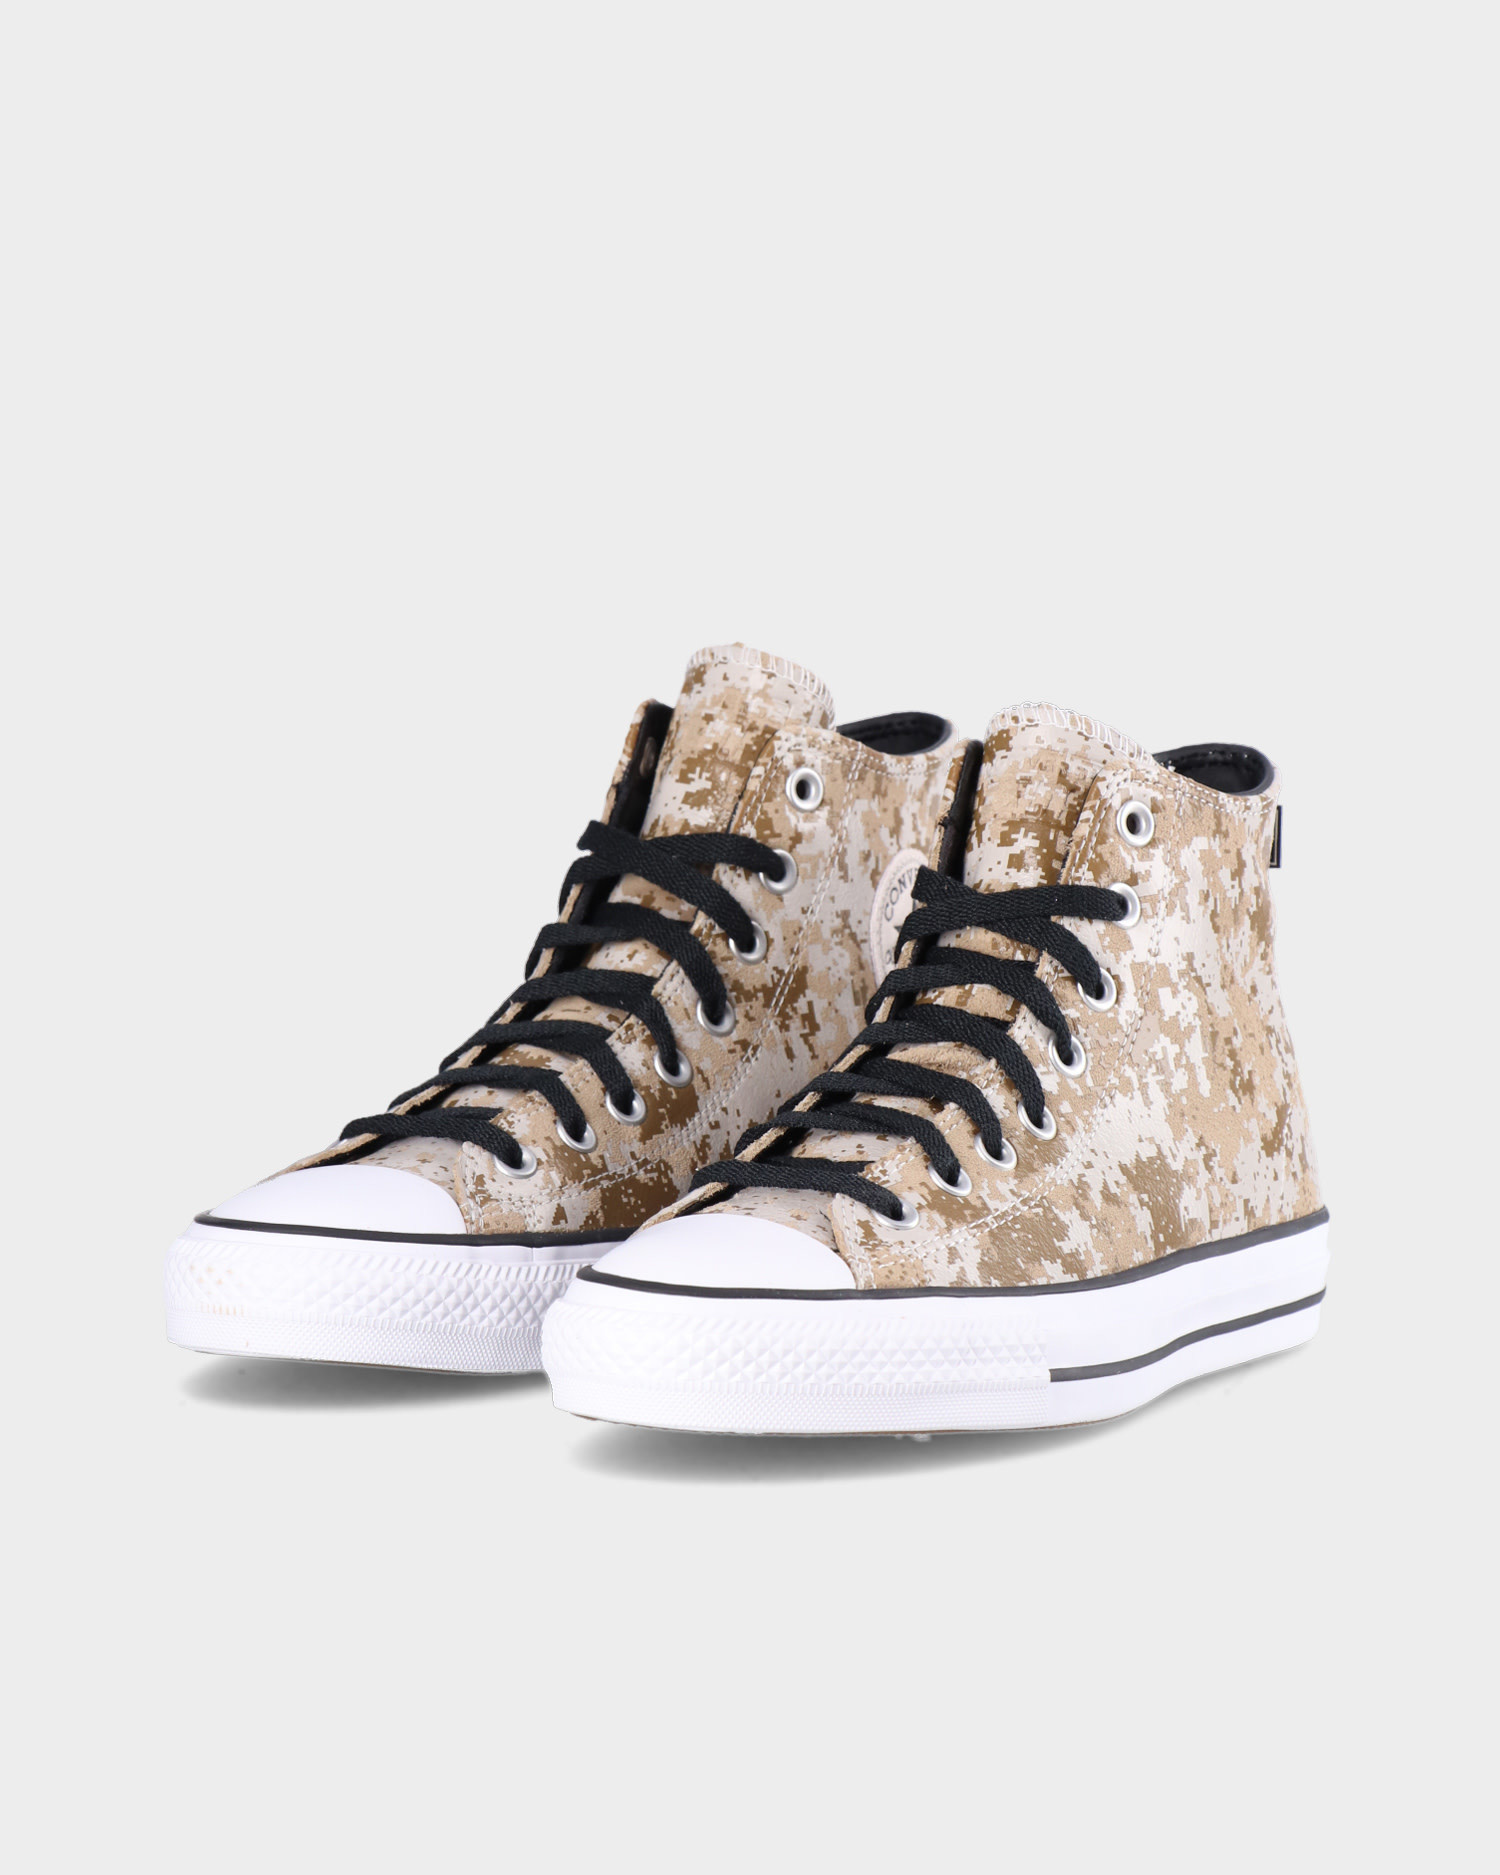 Converse Chuck Taylor All Star Pro Digital Camo Hi  - Khaki/Black/White